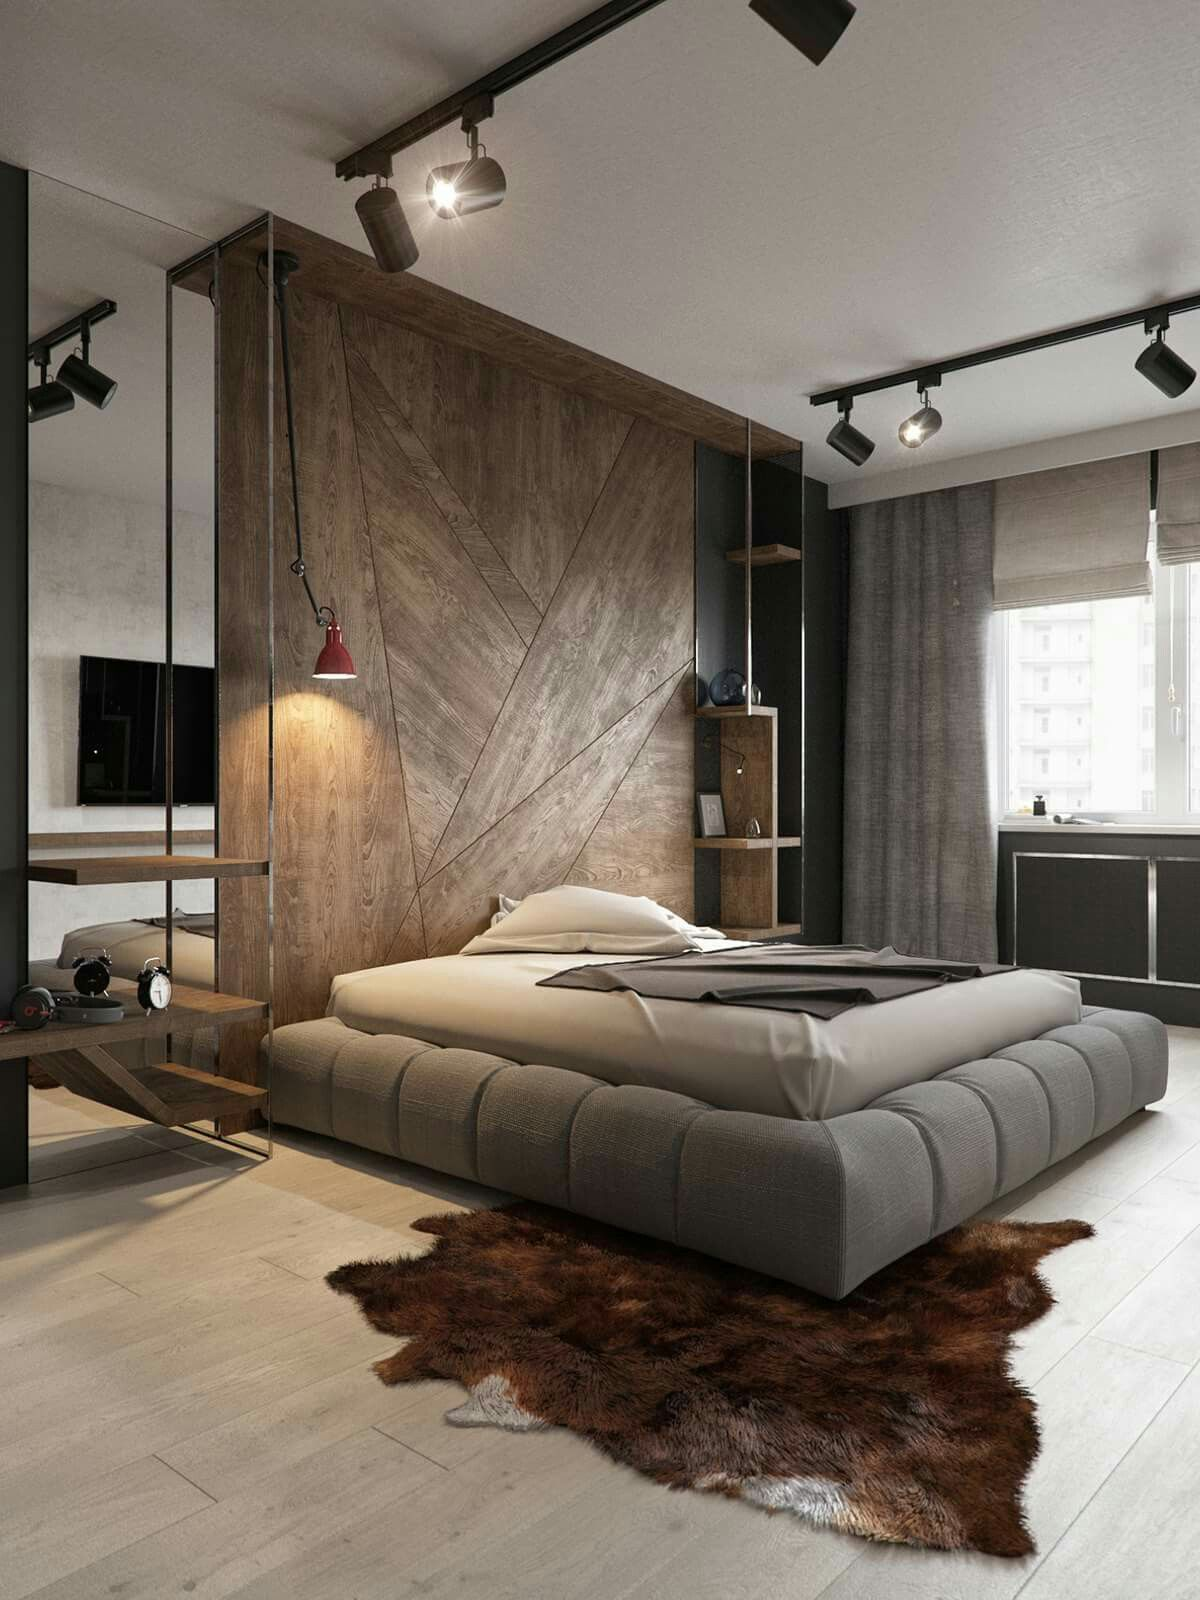 Master Bedroom Interior Design: The Headboard Or Room Partition In This Loft Is Quite